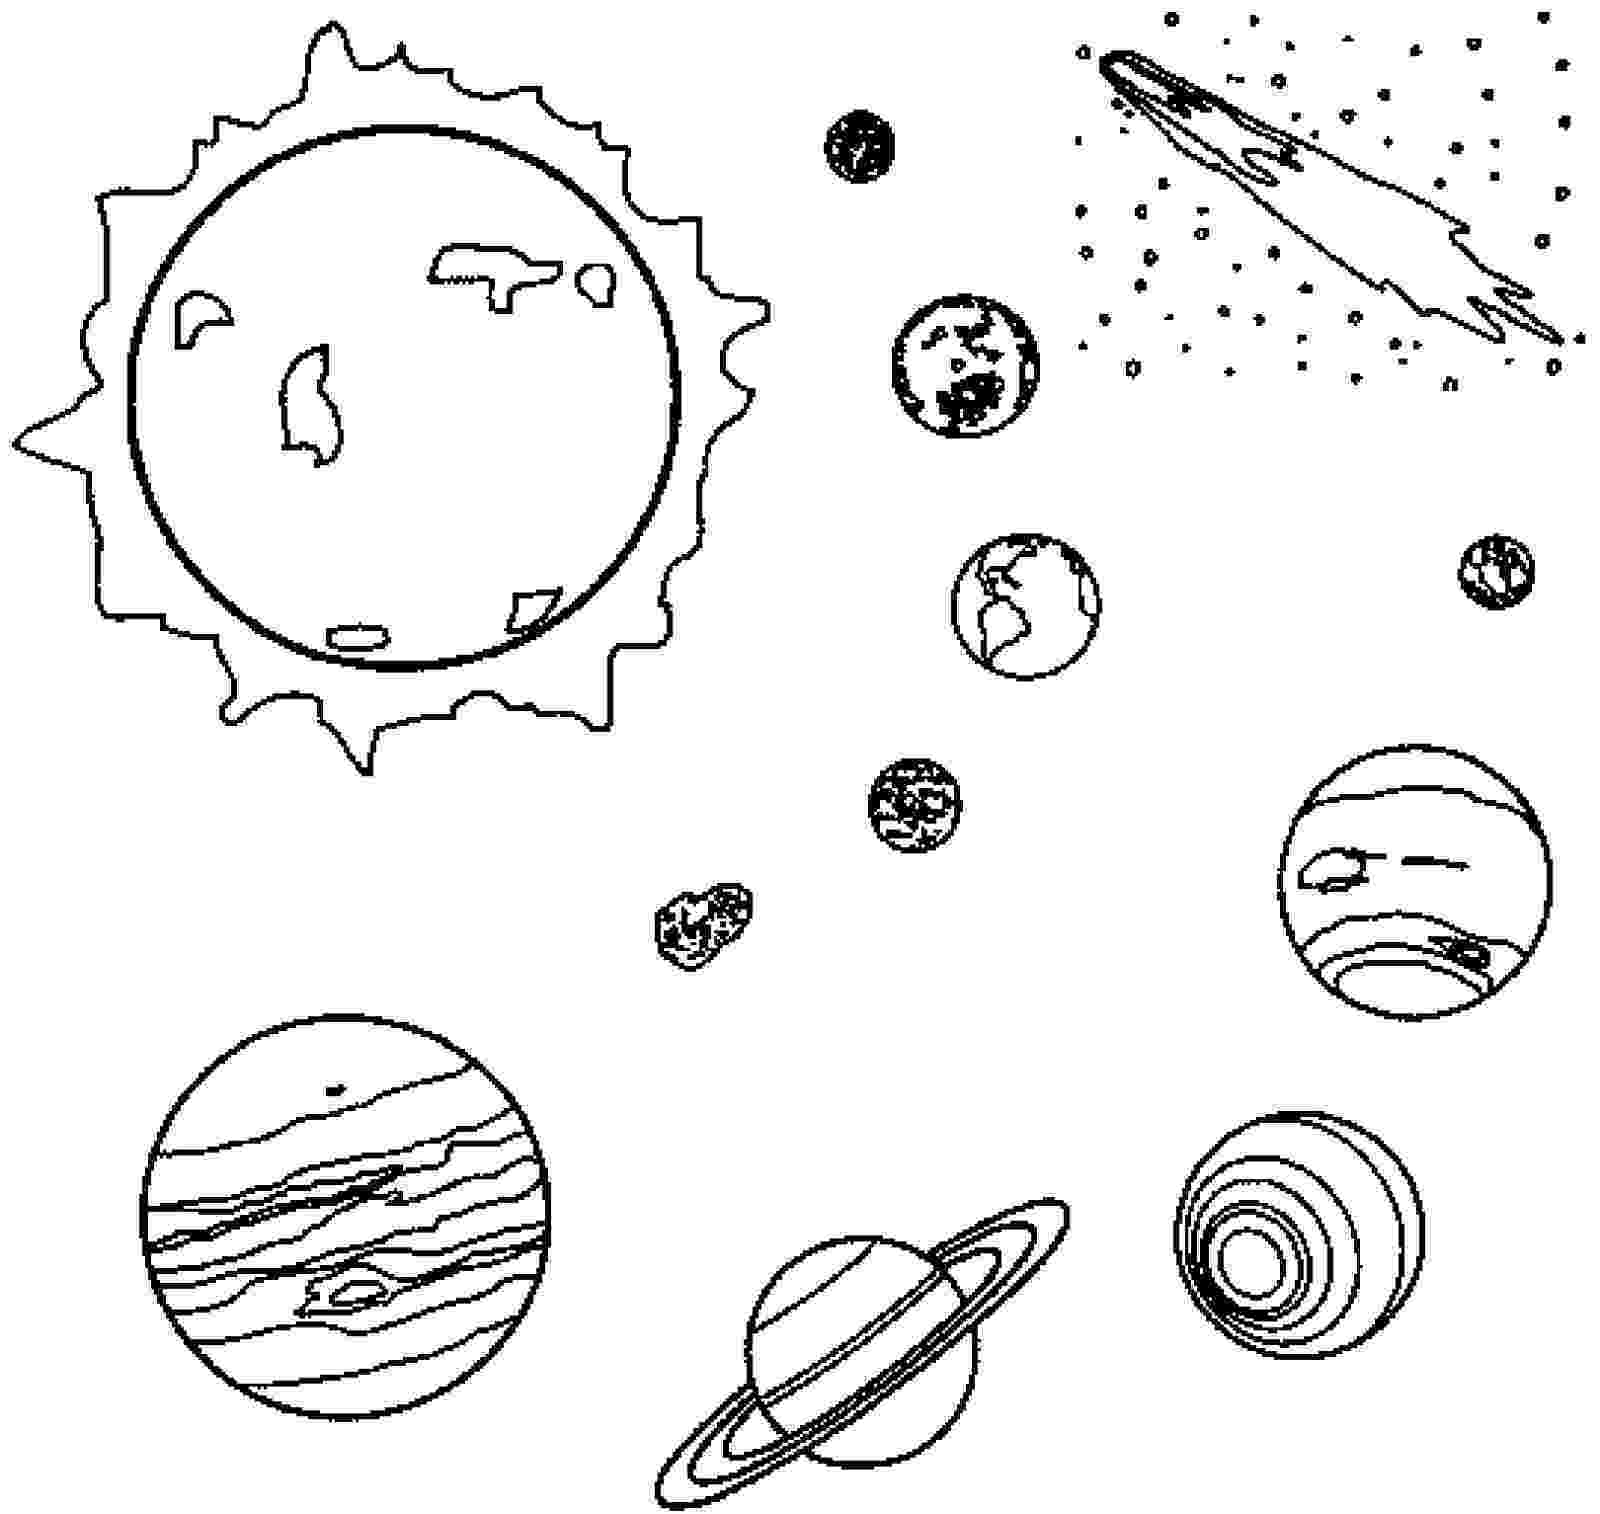 planets coloring page free printable planet coloring pages for kids planets coloring page